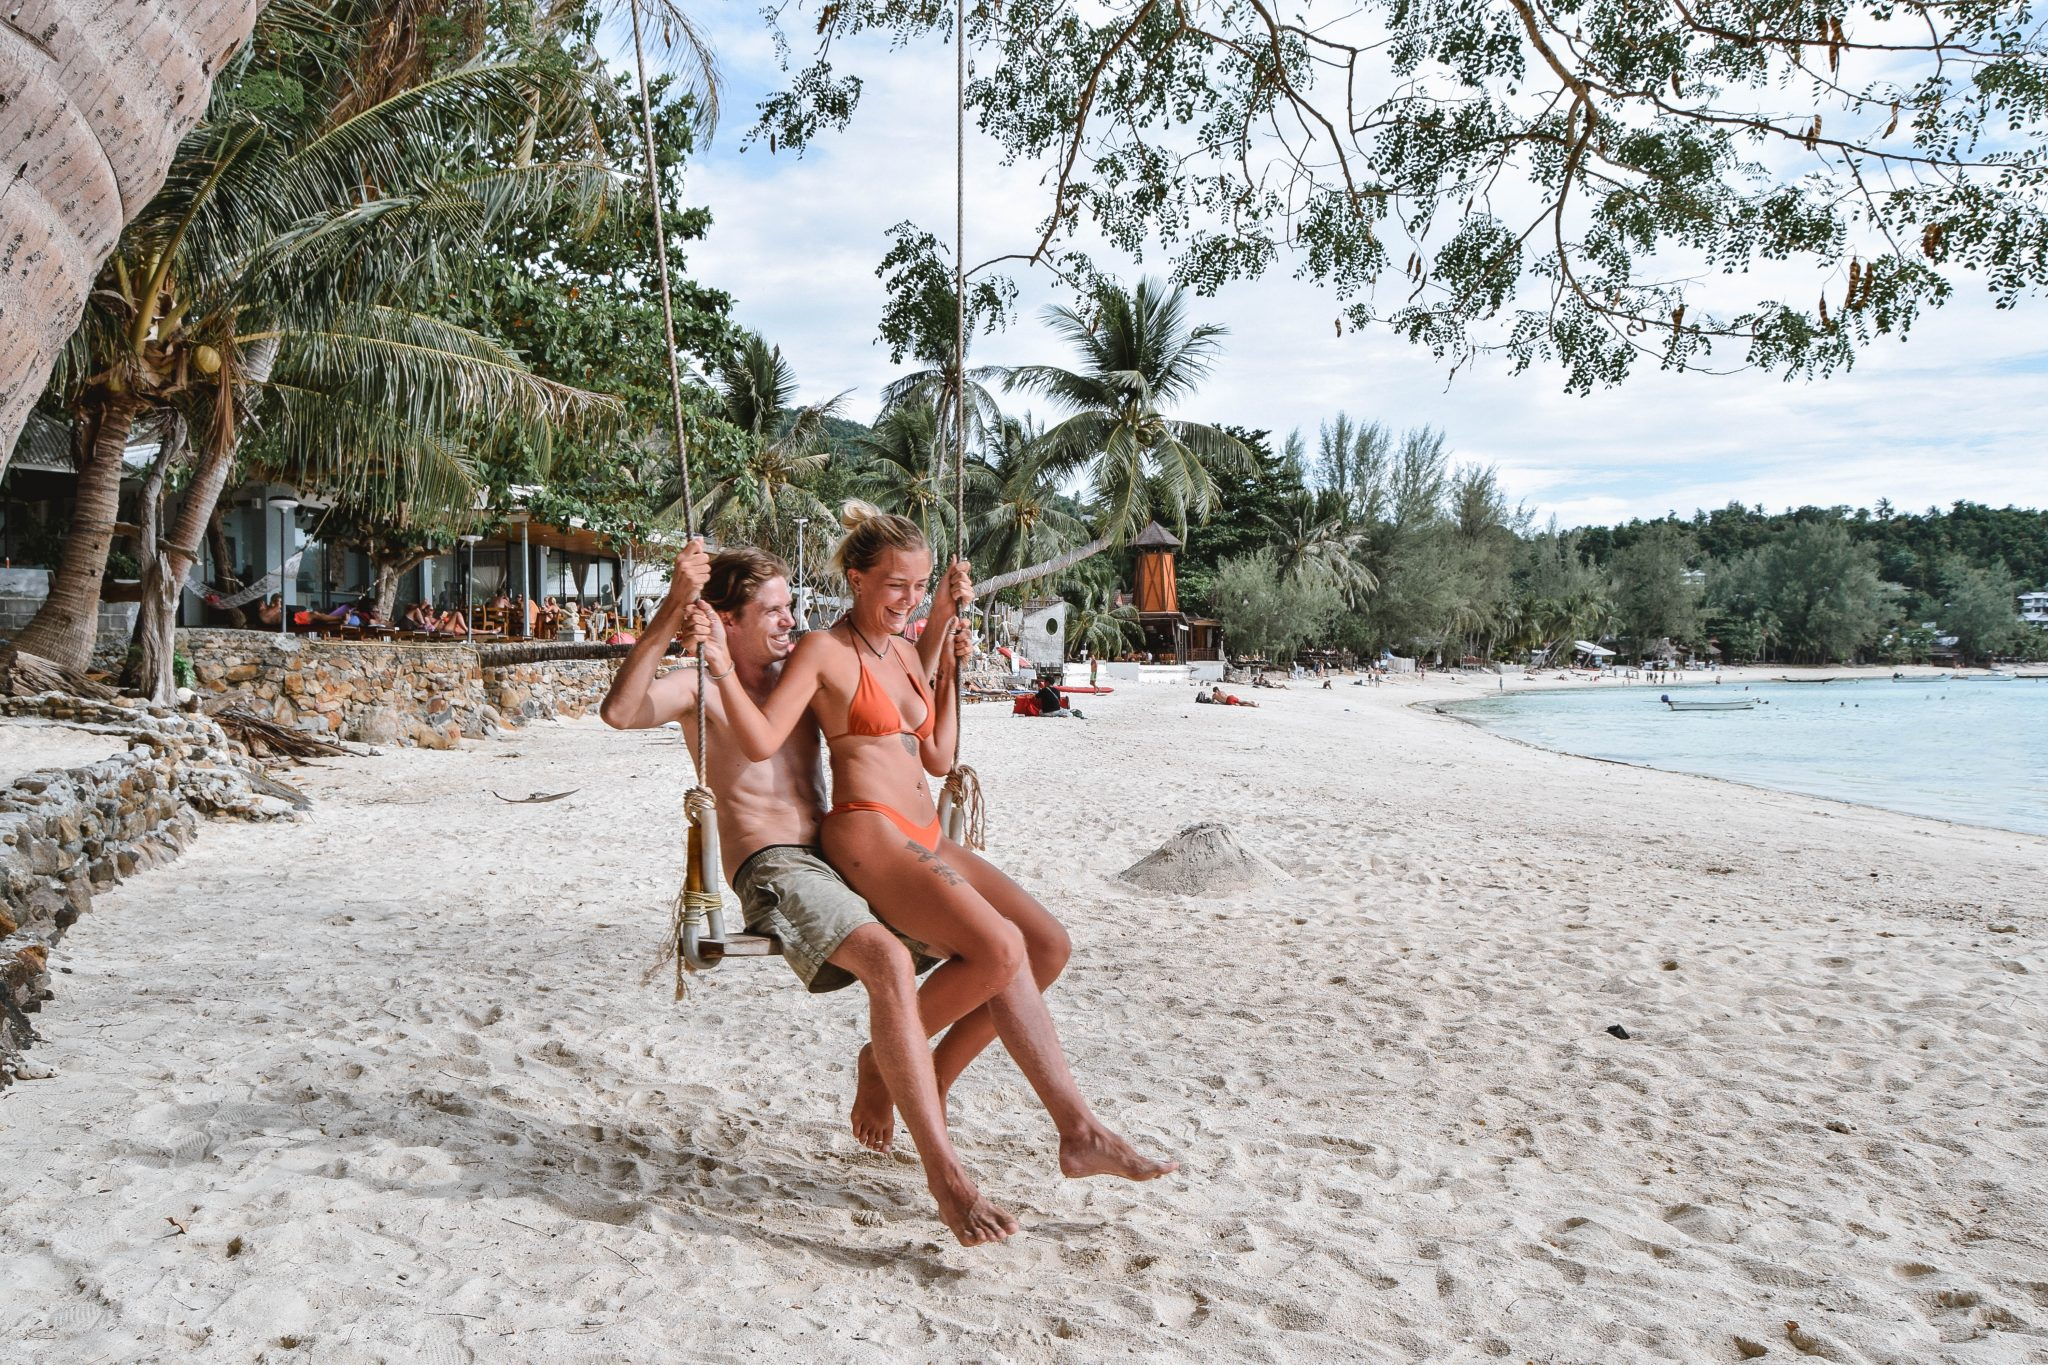 Wanderers & Warriors - Charlie & Lauren UK Travel Couple - Haad Salad Beach Koh Phangan Best Beaches Koh Phangan Beaches